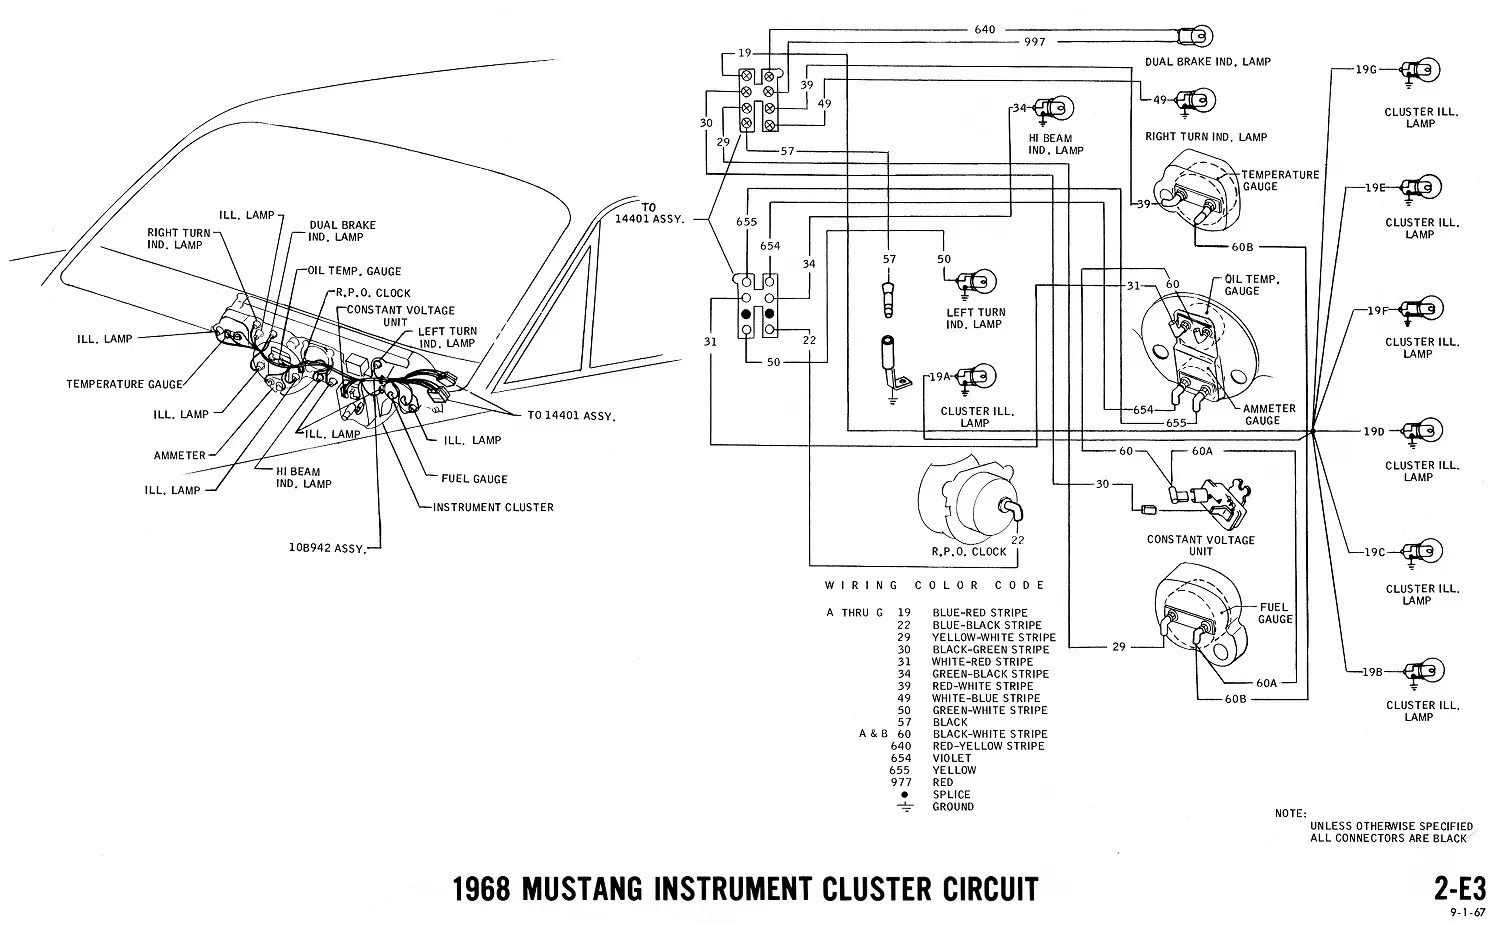 hight resolution of 1968 mustang wiring diagrams evolving software wiring diagram 1968 mustang coupe 1968 mustang air conditioning wiring diagram